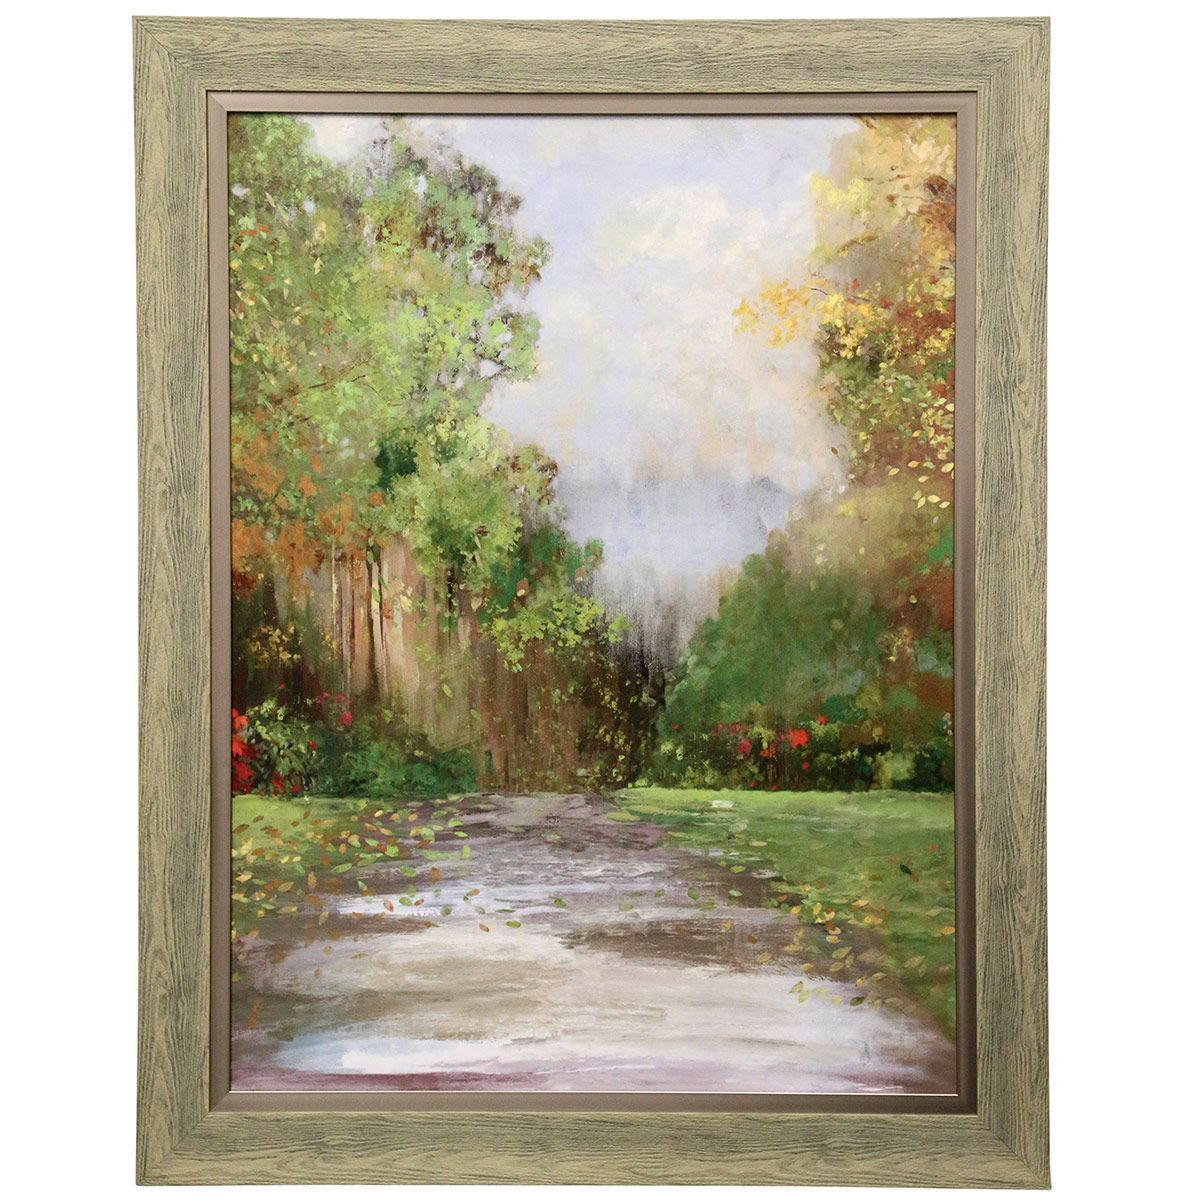 Falling Leaves Framed Wall Art pertaining to Flowing Leaves Wall Decor (Image 9 of 30)